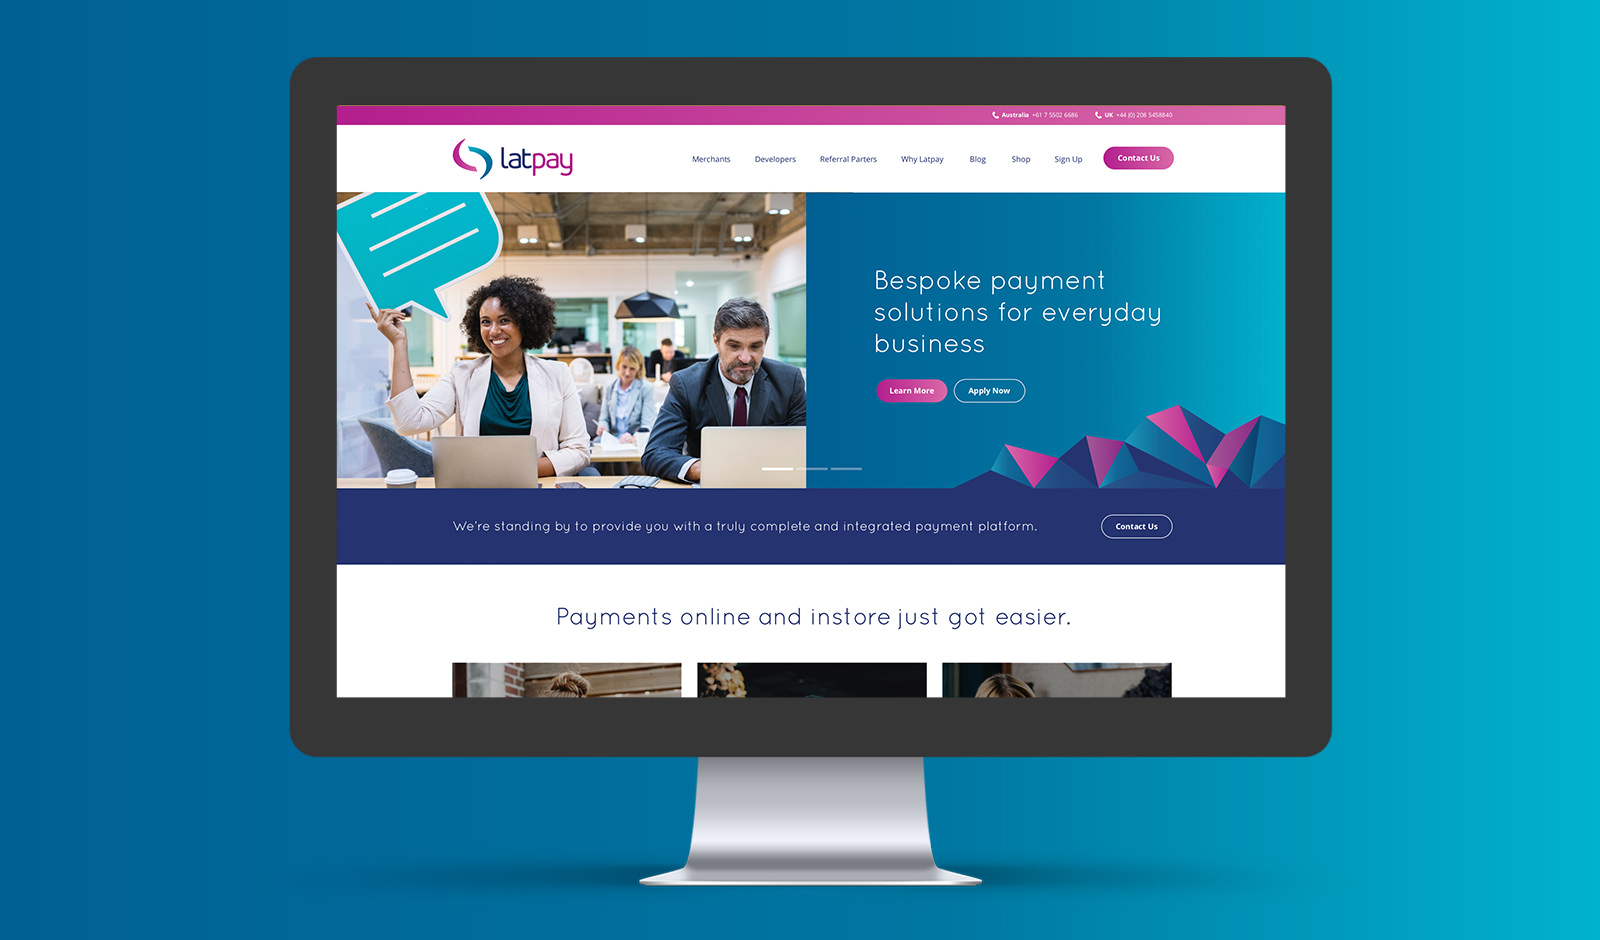 An image of a homepage website design for Latpay